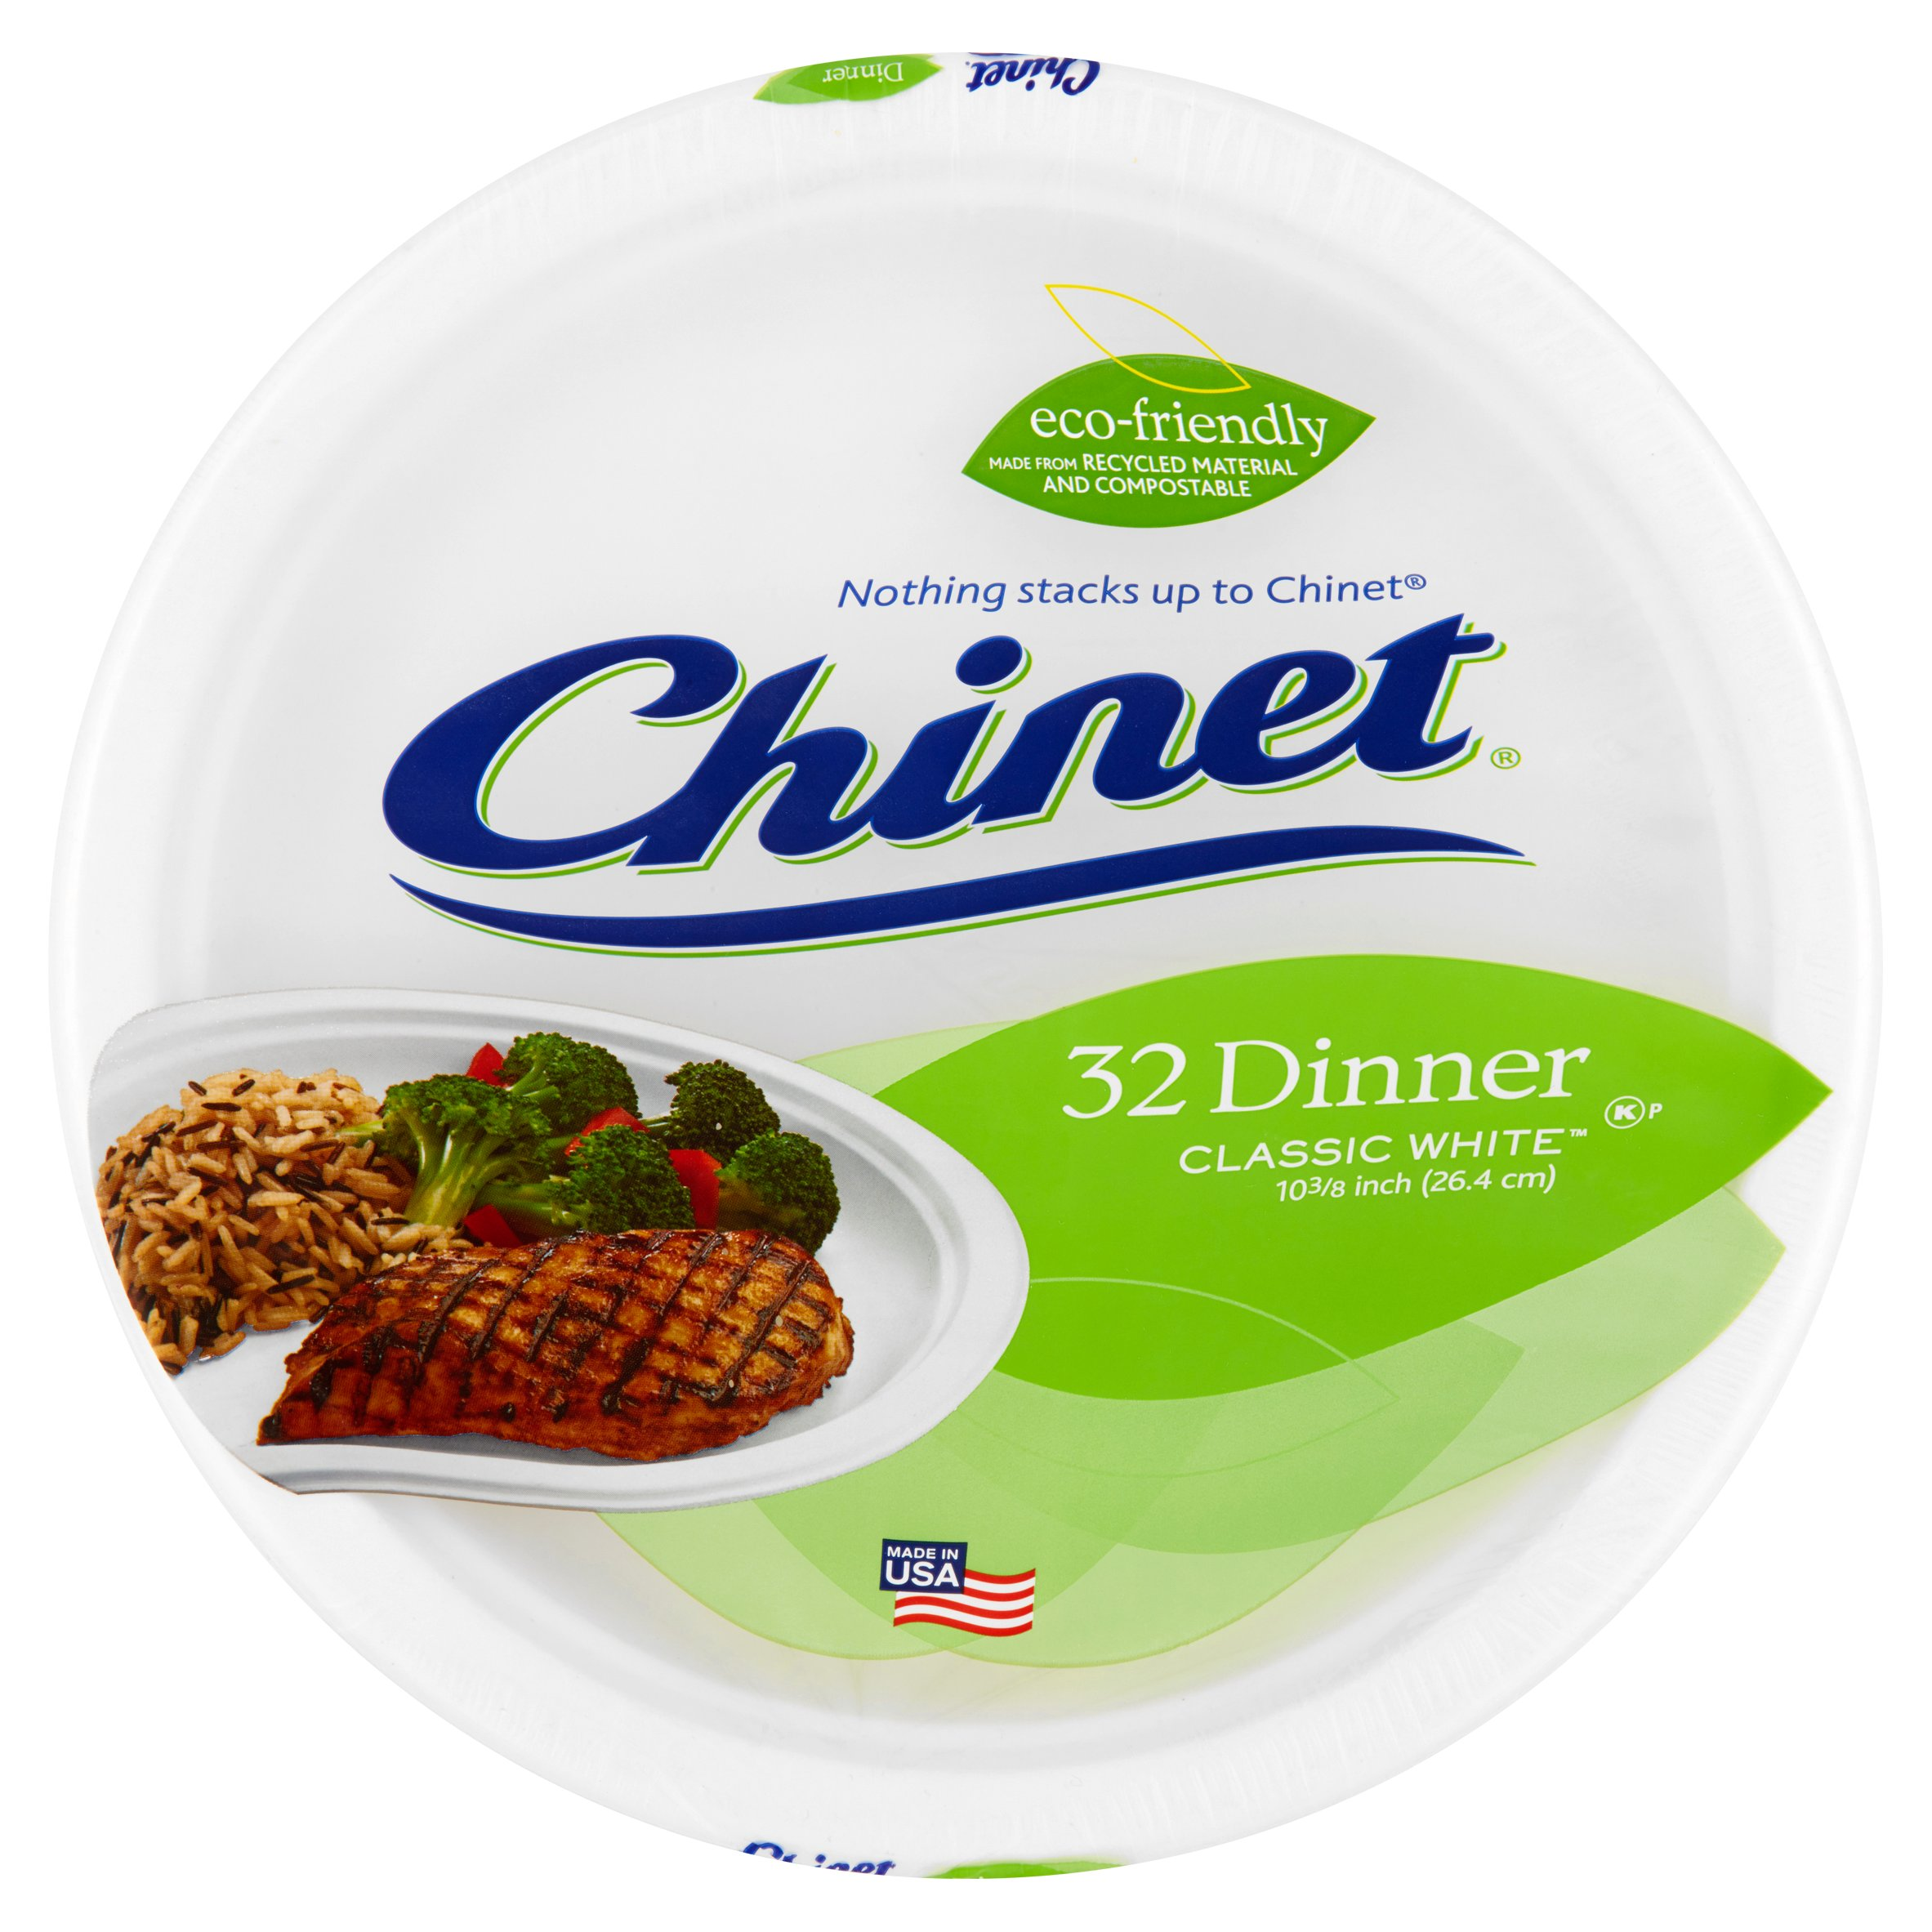 Chinet Classic White Dinner Paper Plates 10 3/8  32 Count  sc 1 st  Walmart & Chinet Classic White Dinner Paper Plates 10 3/8